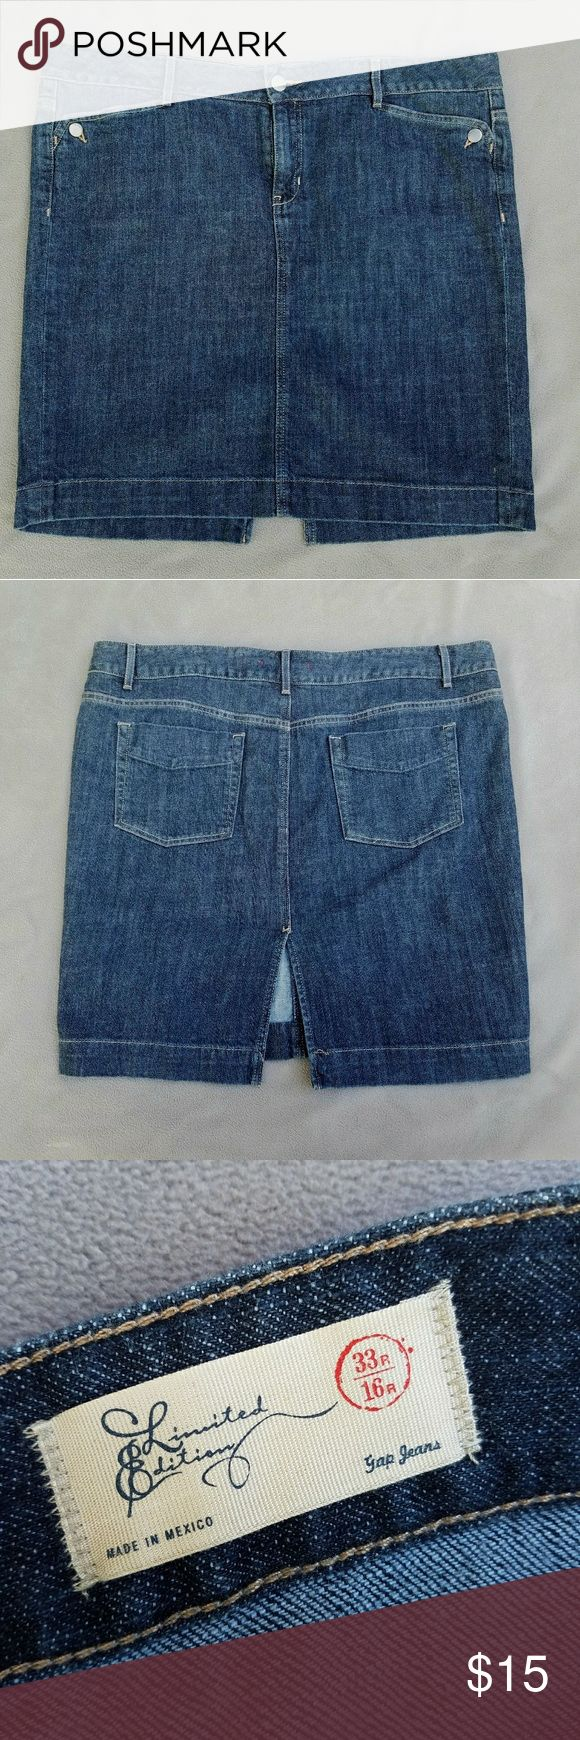 GAP Jean Skirt size 16 GAP Jean Skirt worn once. Size 16 GAP Skirts